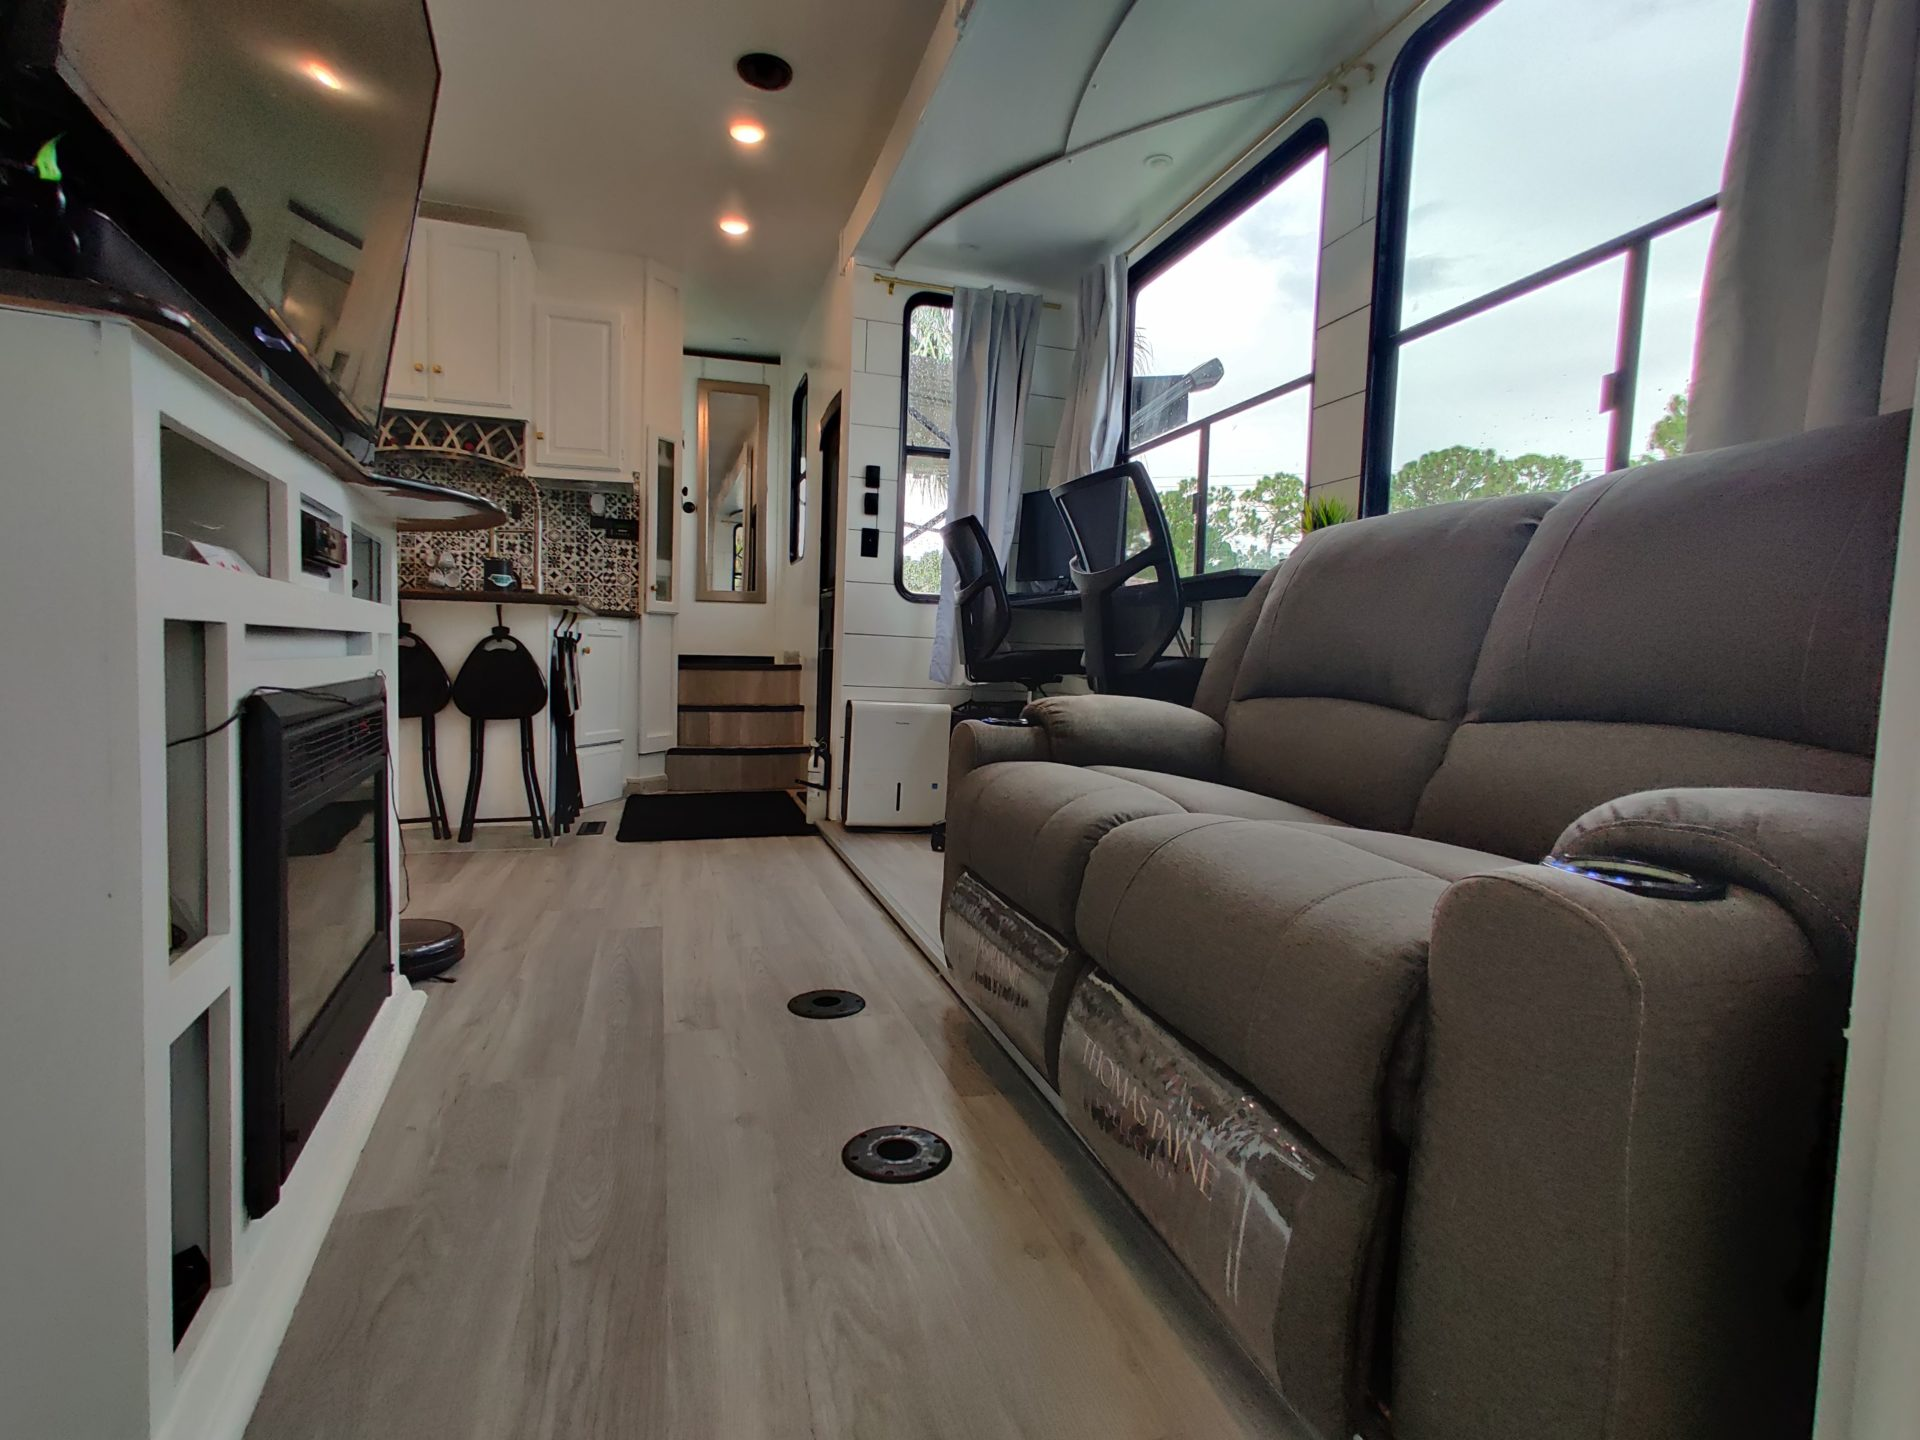 7 Lessons Learned From our RV Remodel